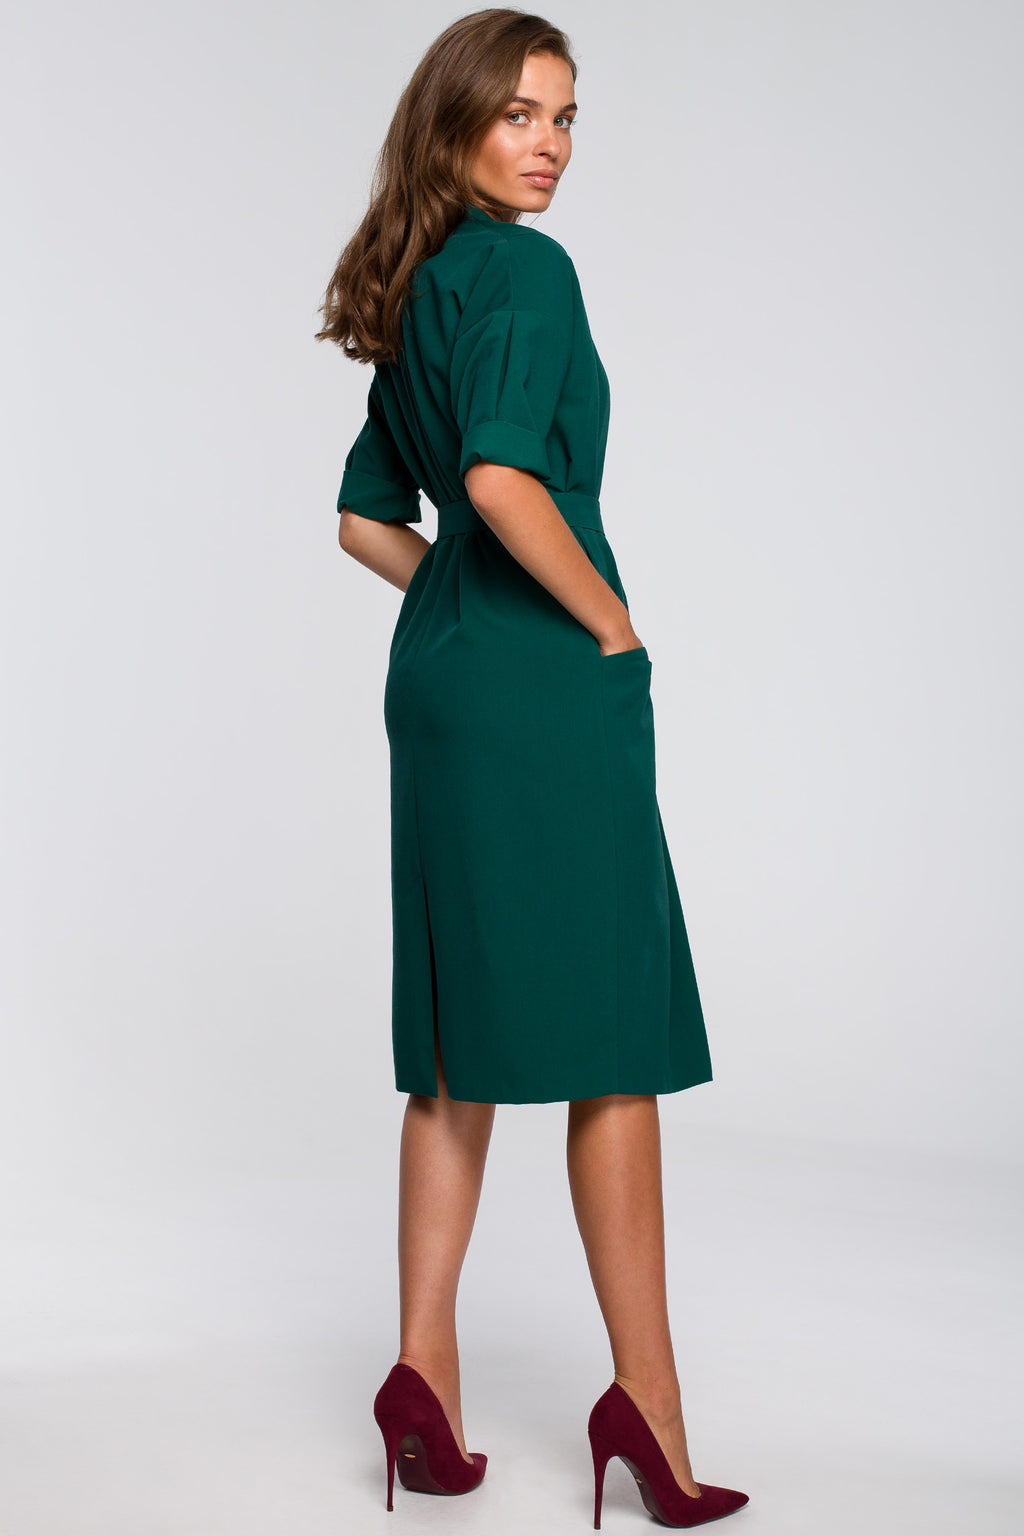 Green Elbow Sleeve Shirt Dress - So Chic Boutique